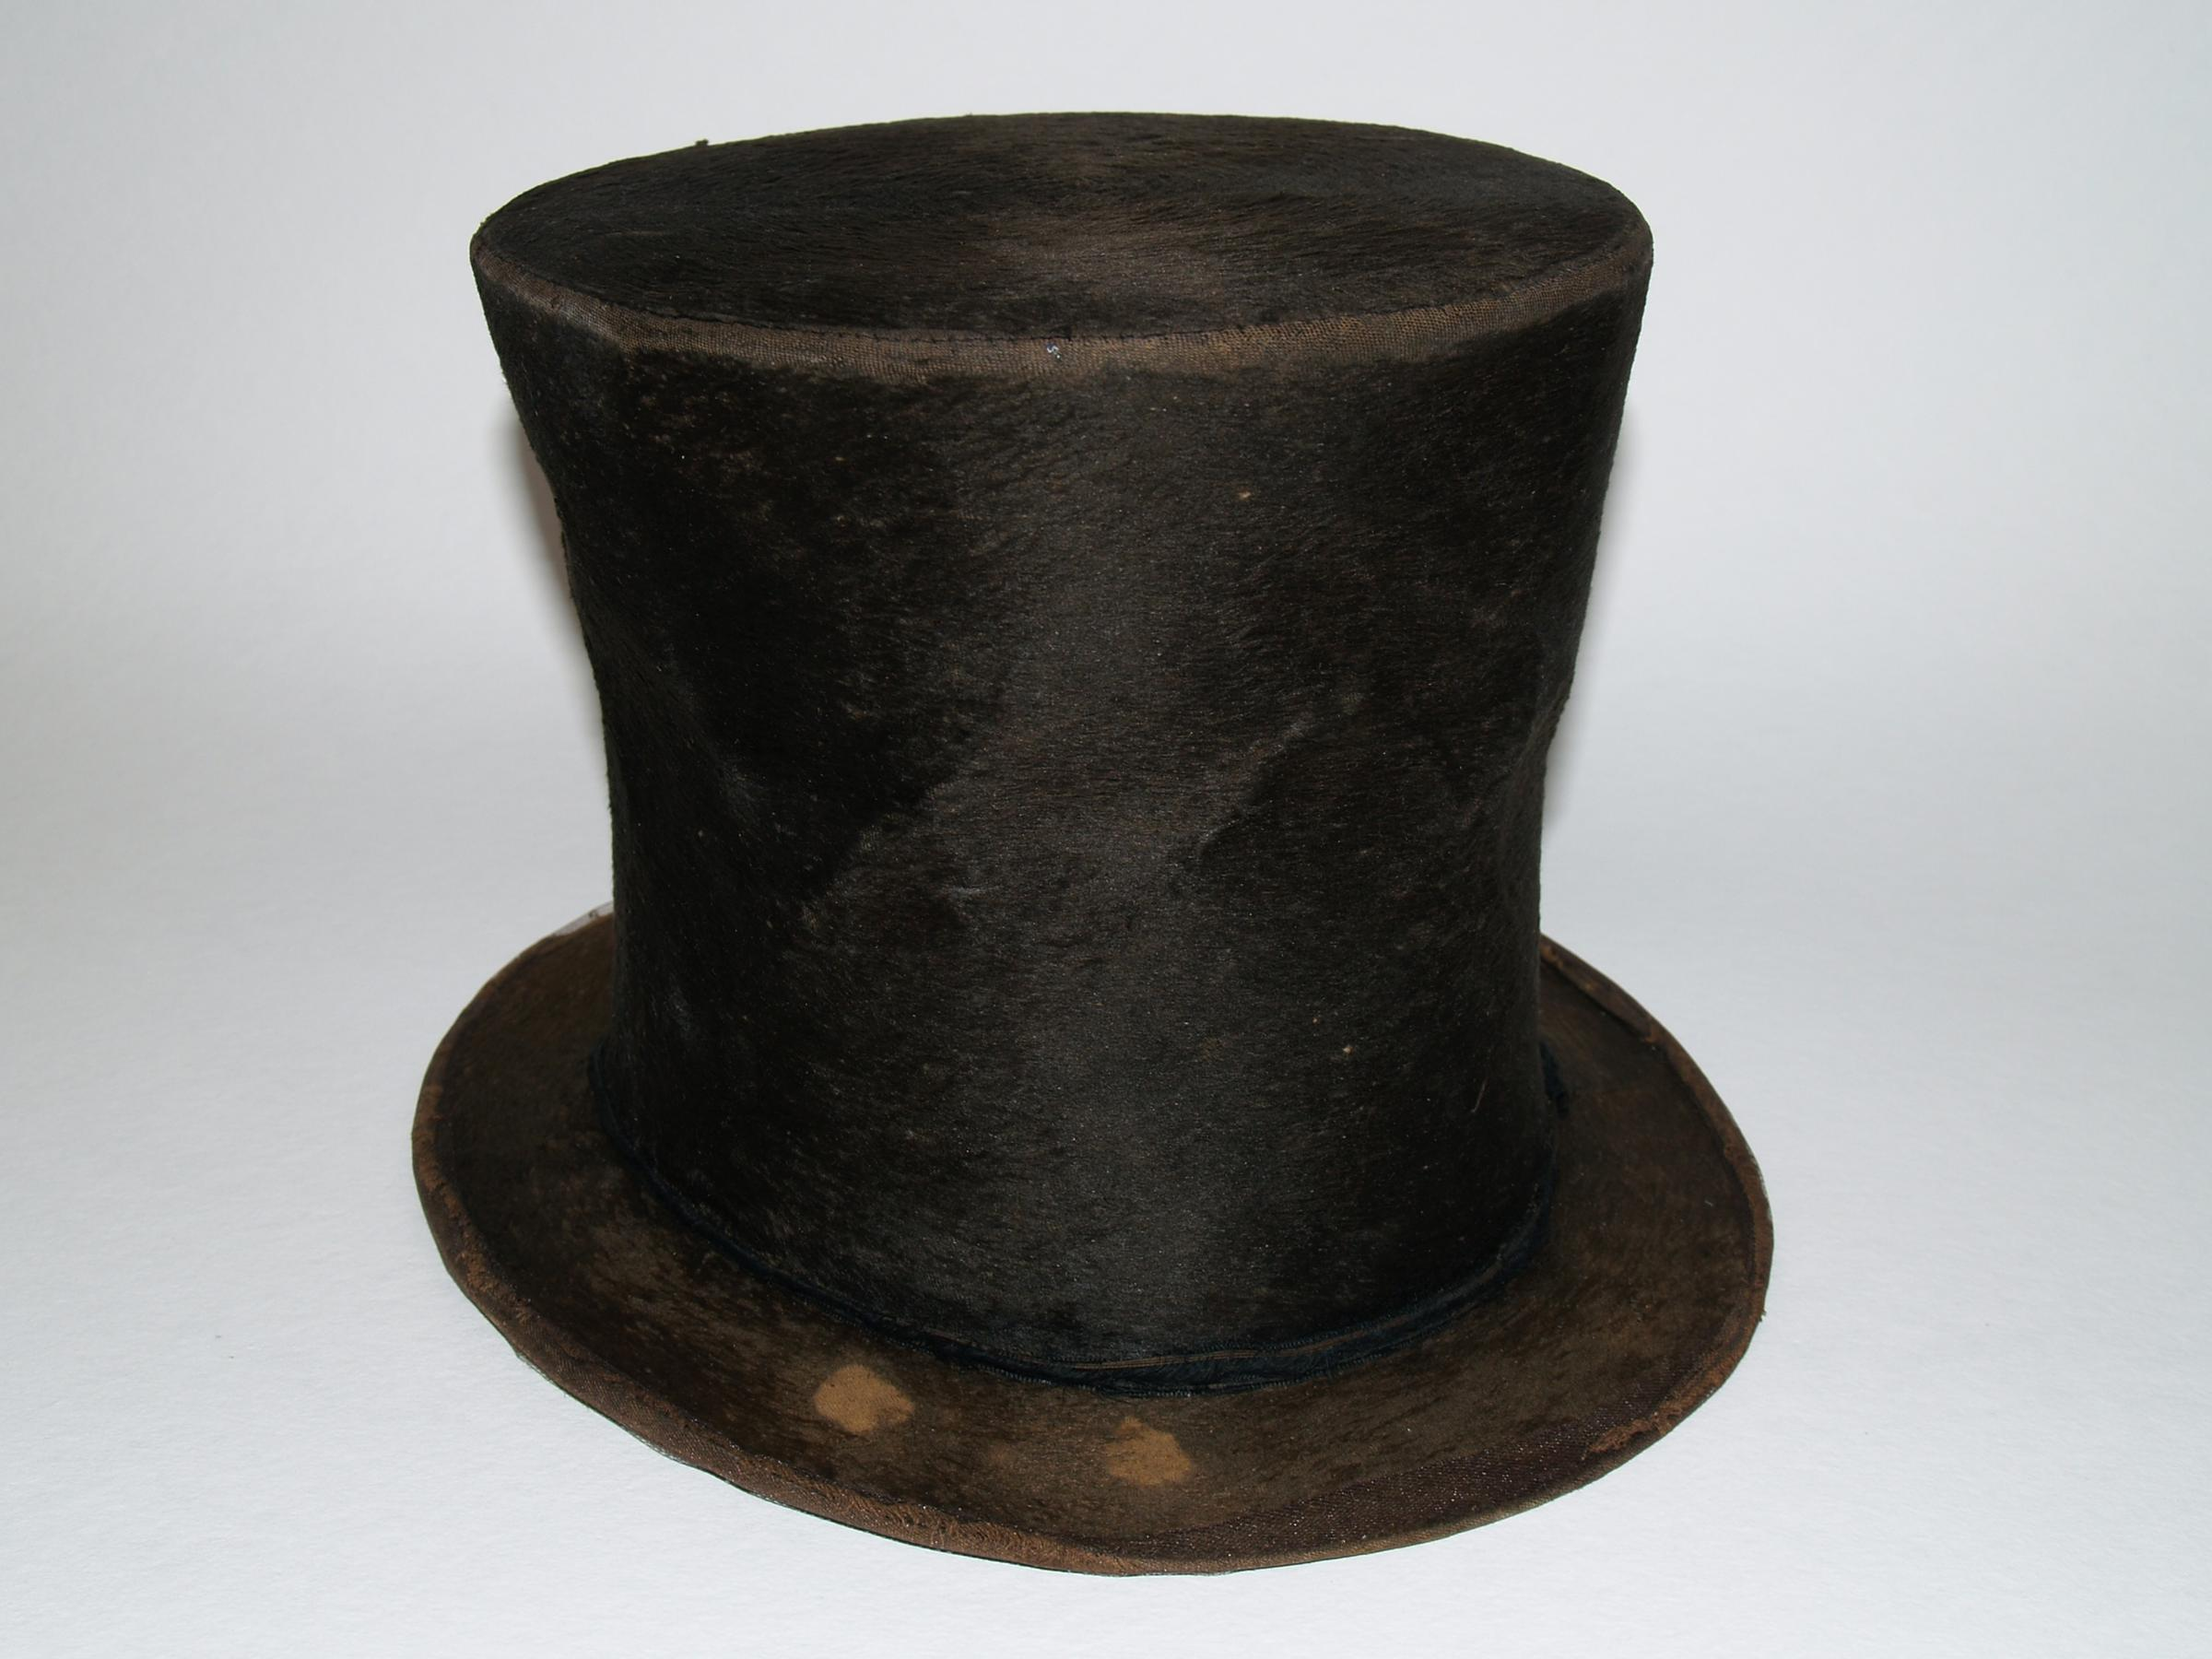 fef41bba6b7 The beaver fur stovepipe hat in the Taper Collection is believed to be one  of three in existence that were worn by Lincoln. Some historians say  there s no ...